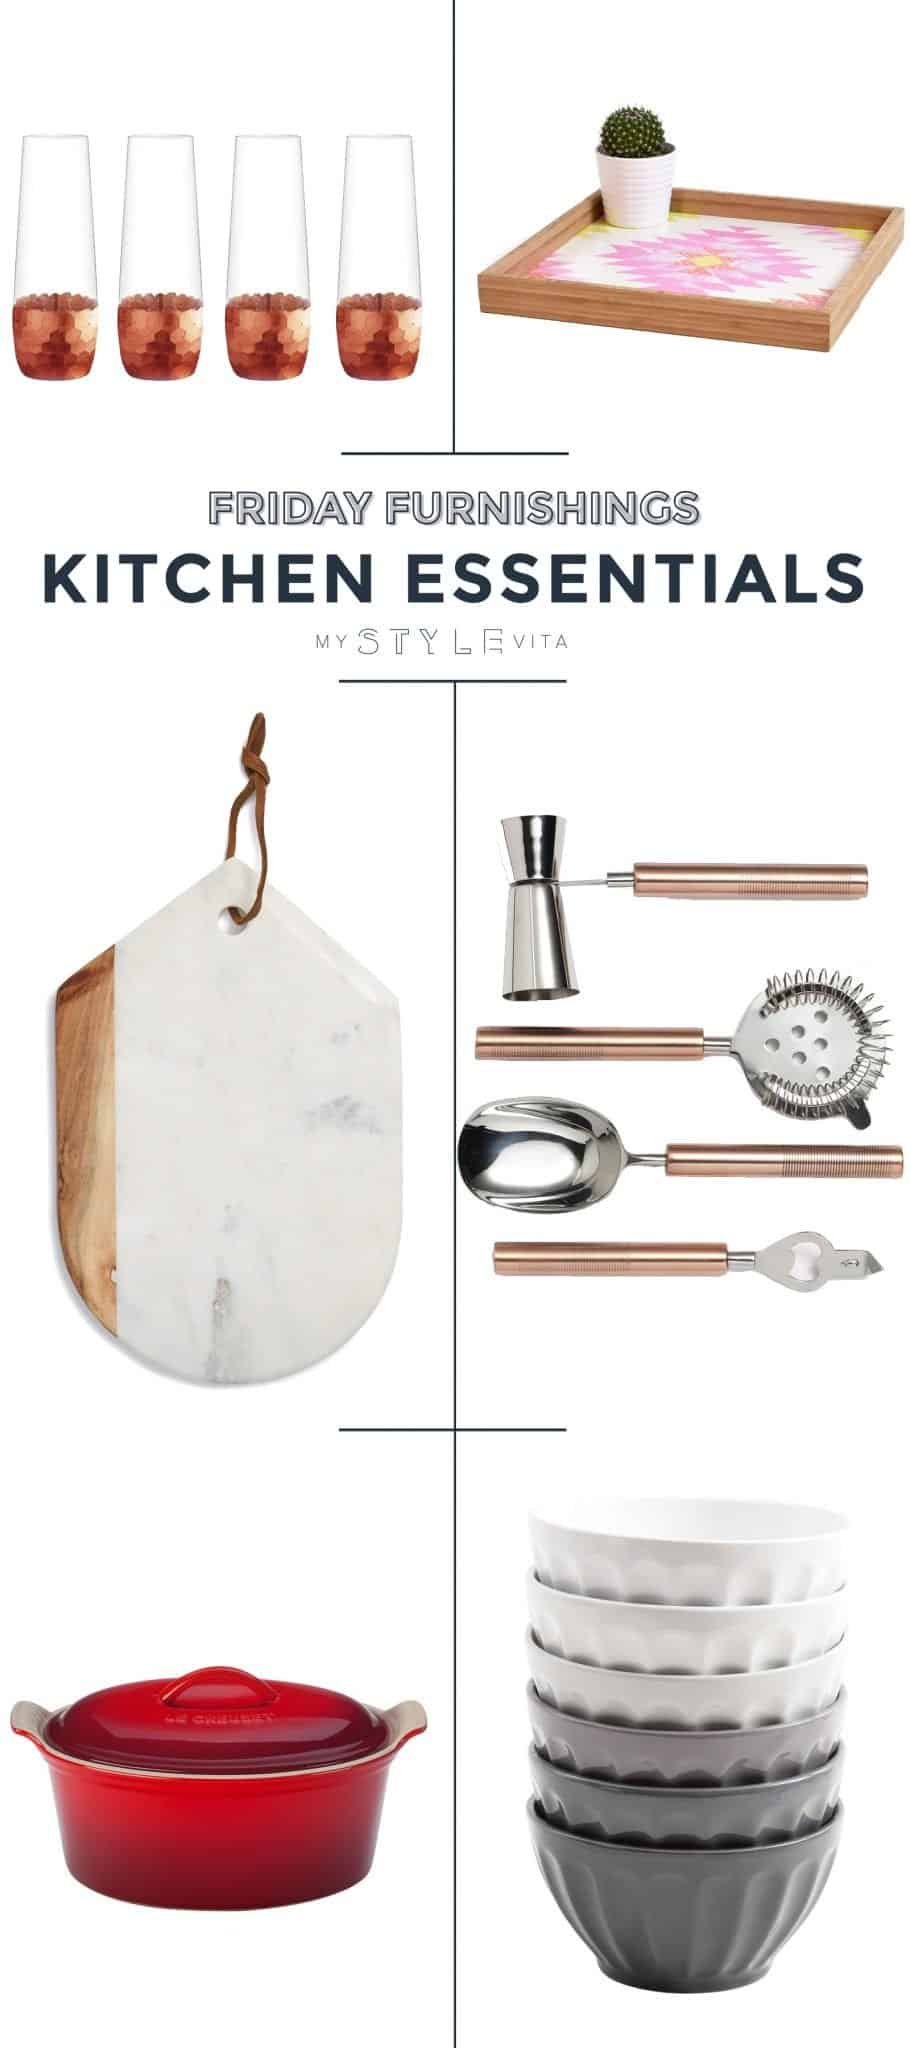 Kitchen Items From Nordstrom Anniversary Sale